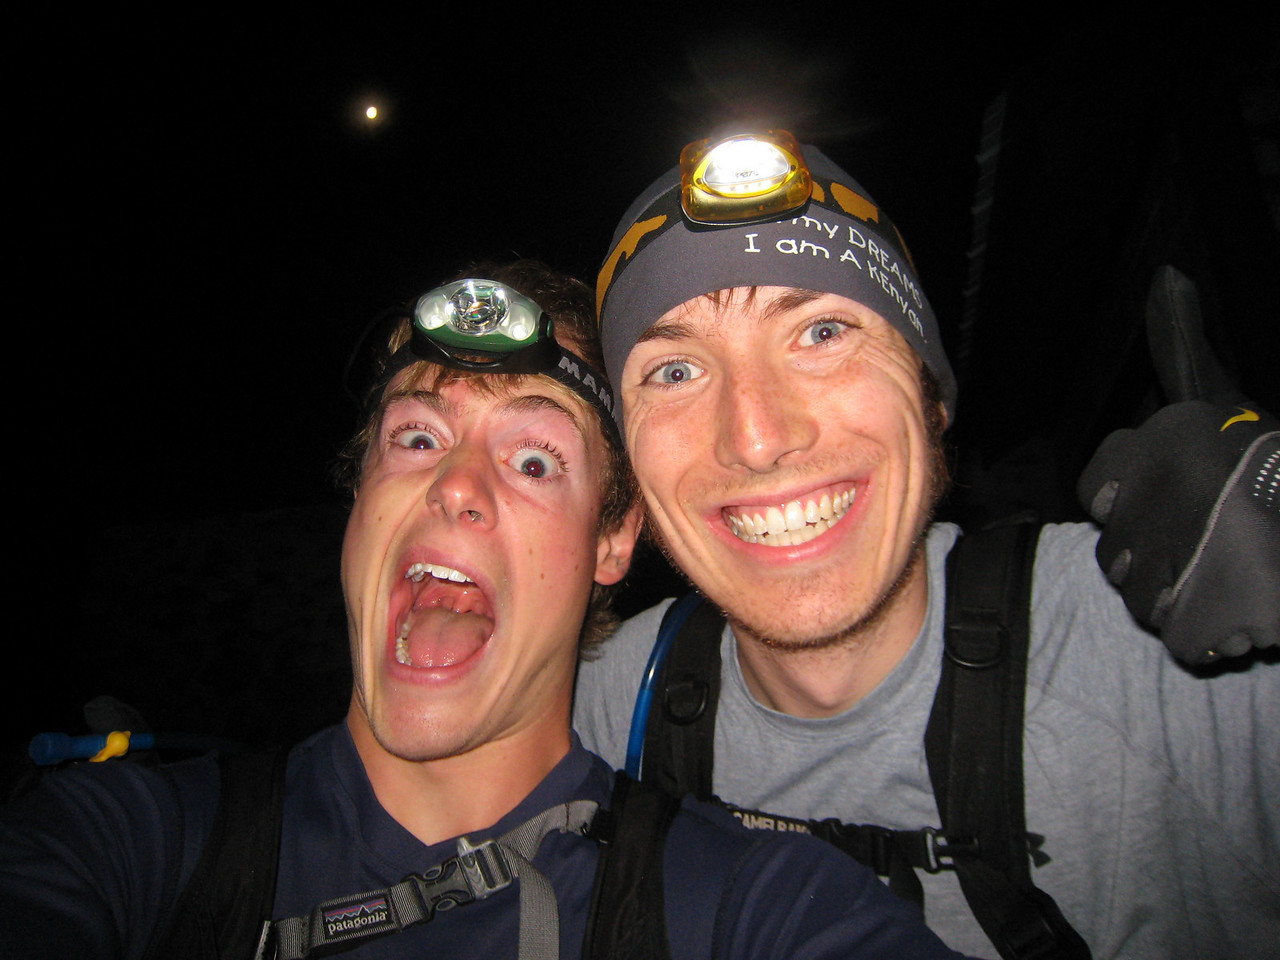 We were amped. The moon was amazing- you can see it right above my head. For the whole traverse, the weather could not have been more perfect.